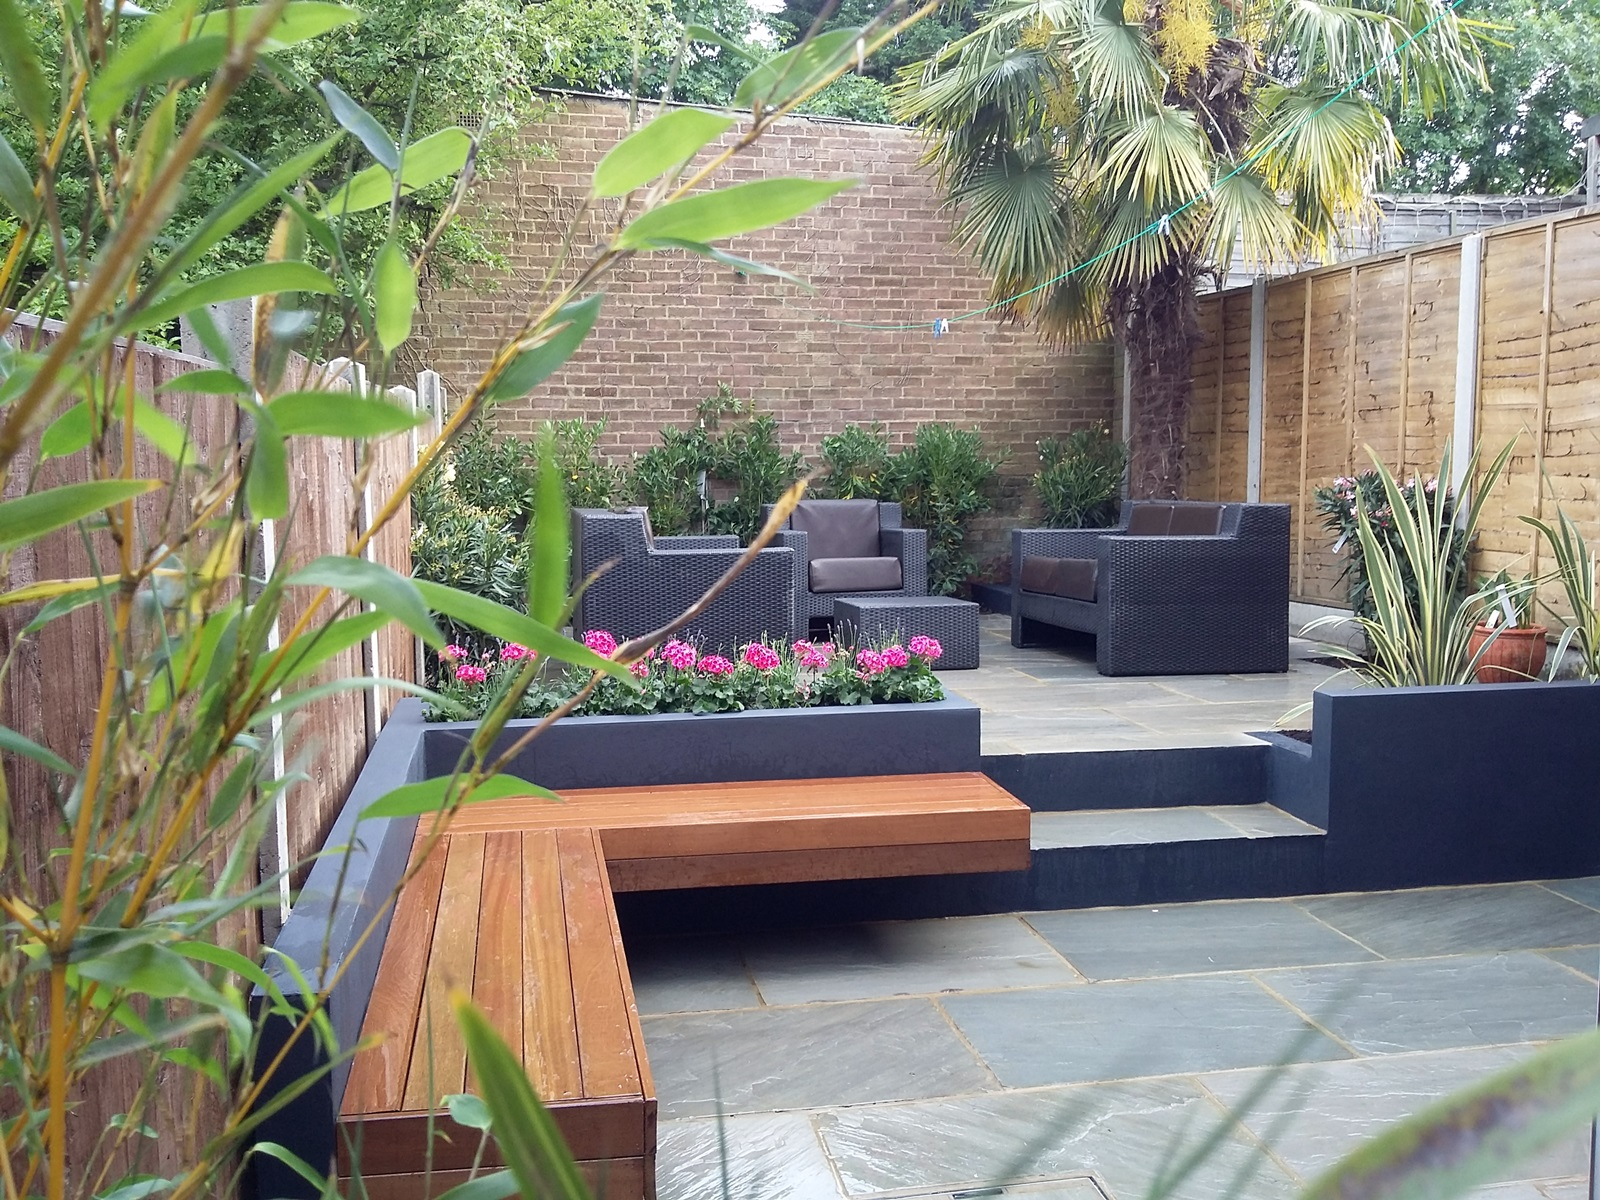 Modern garden design london natural sandstone paving patio for Garden patio design ideas